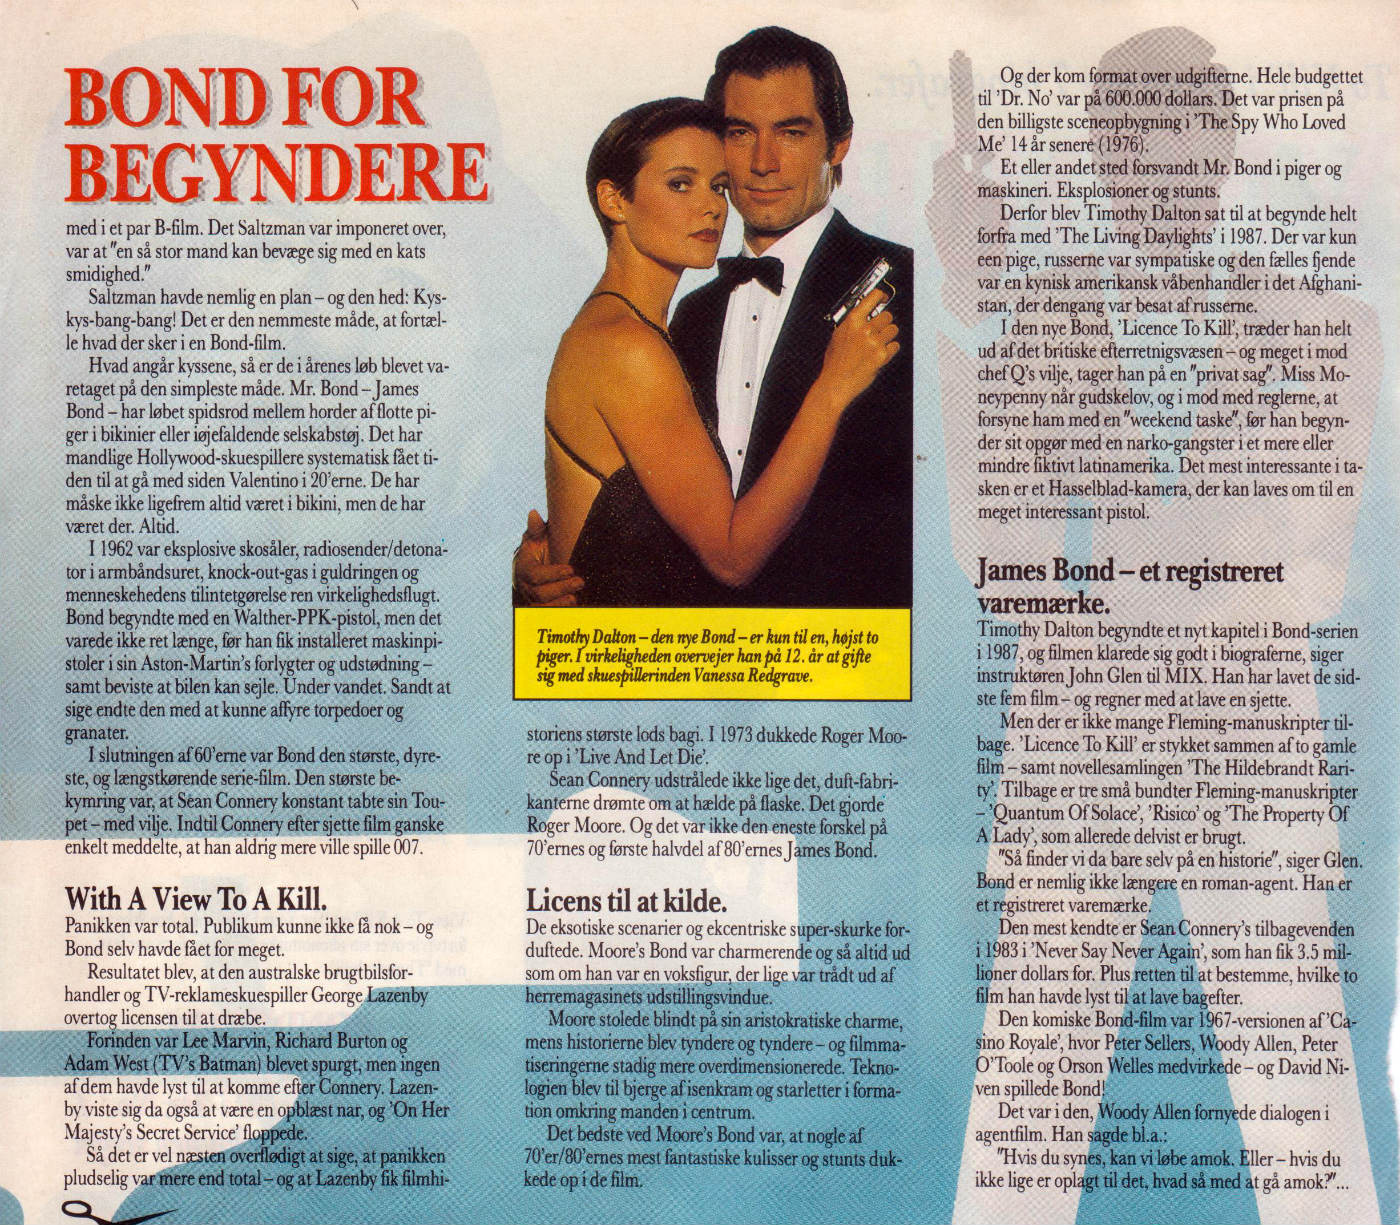 Bond for begyndere - MIX 1989 C